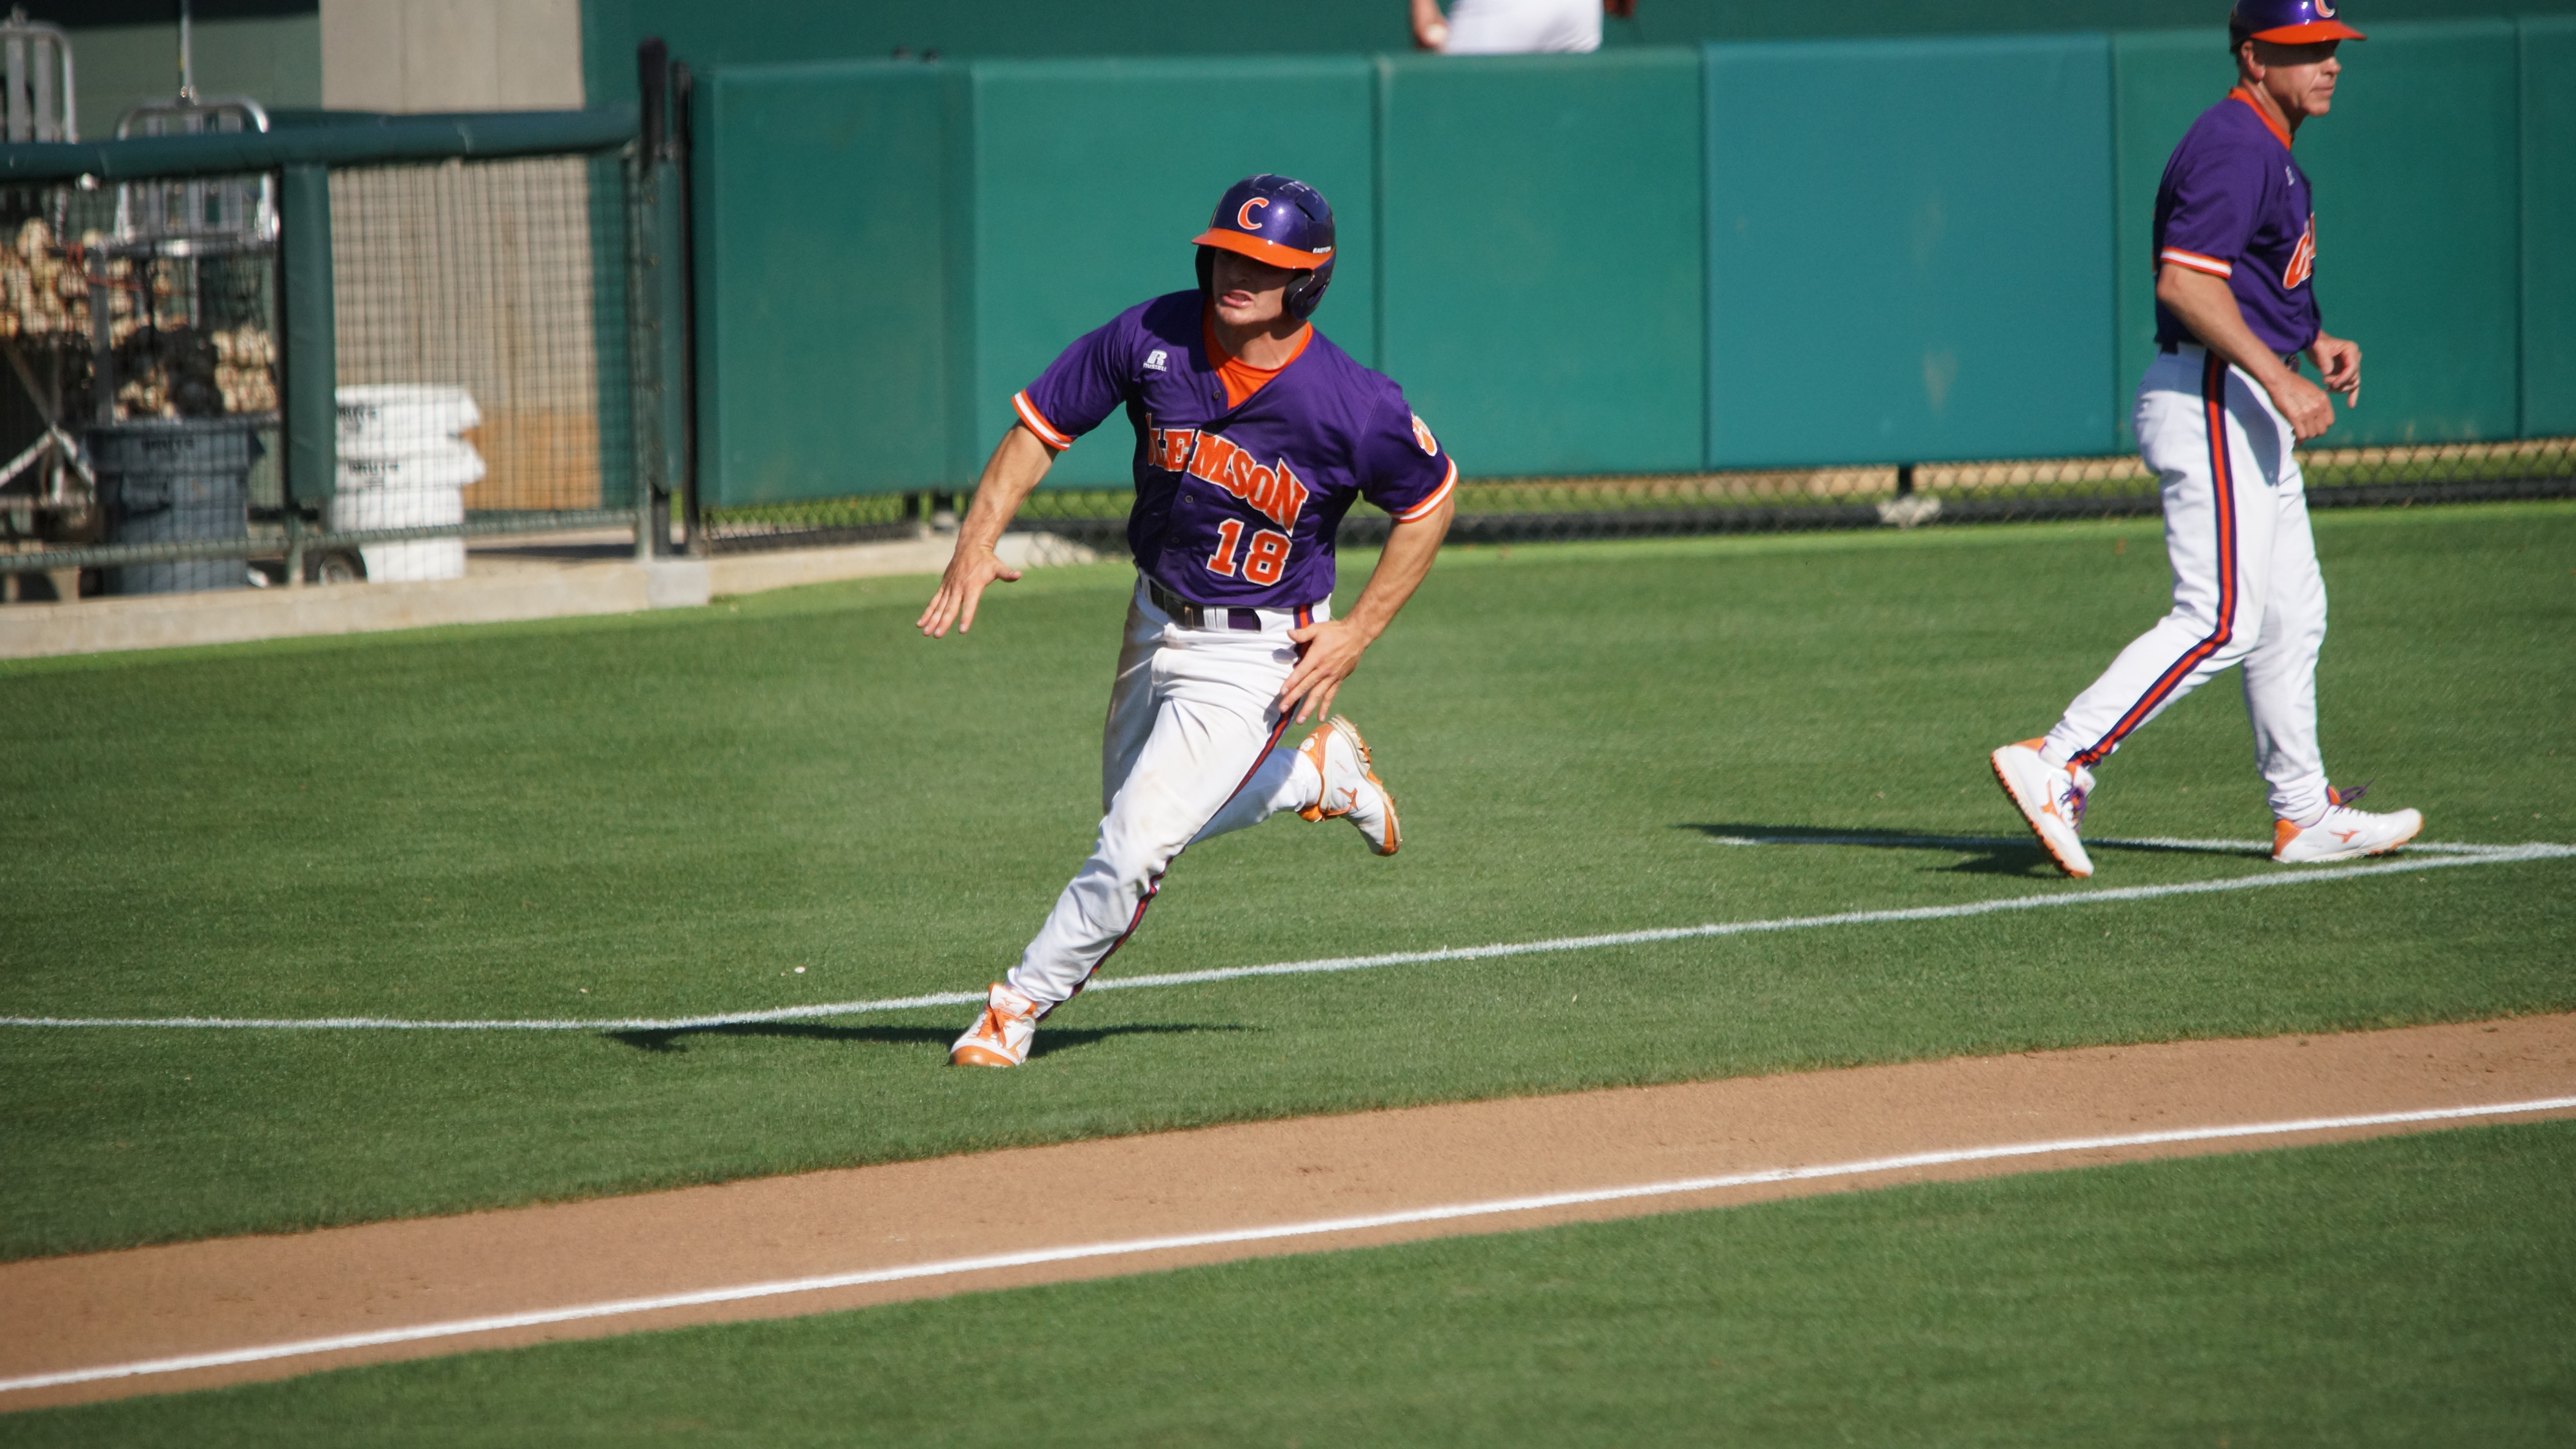 Seven-Run Eighth Inning Lifts Tigers Over Dukes 9-4 Saturday